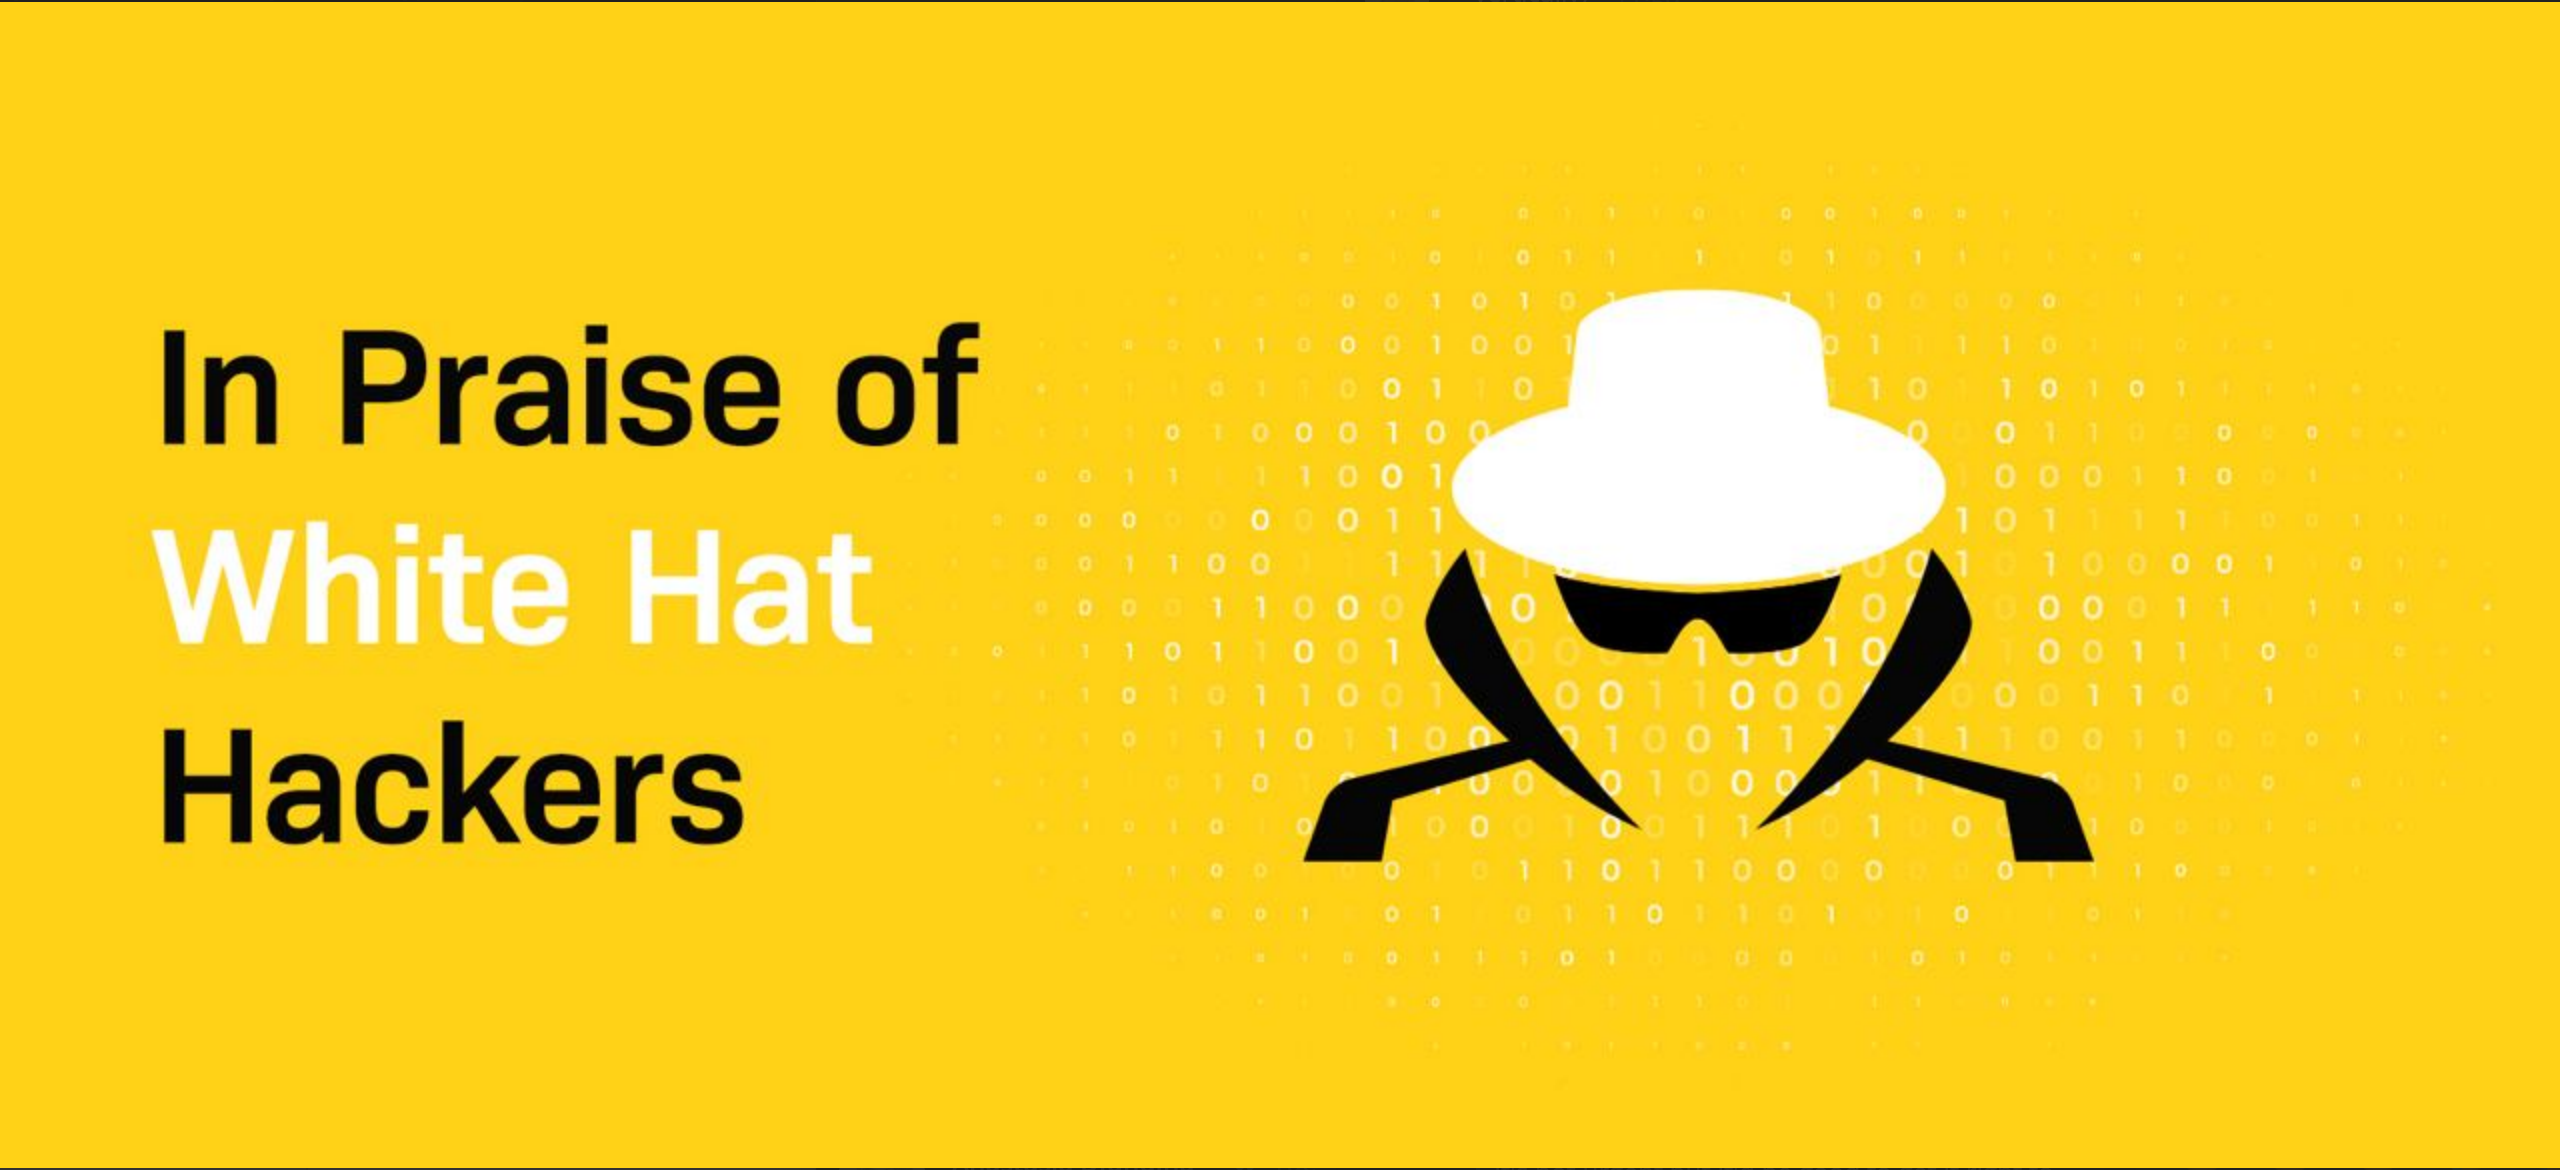 In Praise of White Hat Hackers